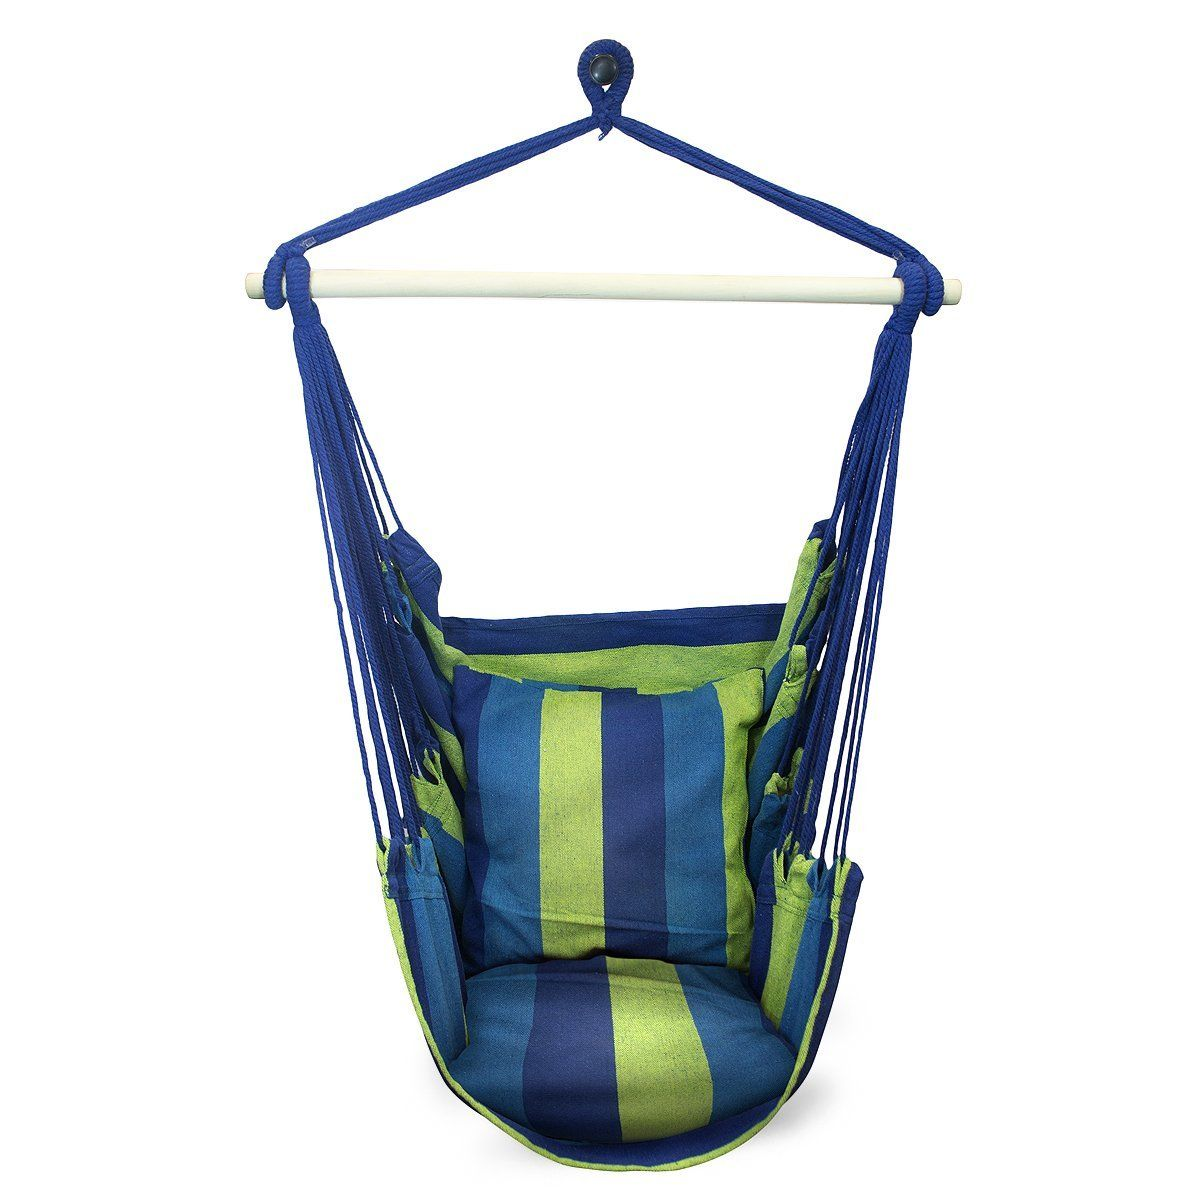 sorbus blue hanging rope hammock chair swing seat for any indoor or outdoor spaces  max  nice top 10 best hammock chairs and swings in 2017 reviews   sport      rh   pinterest